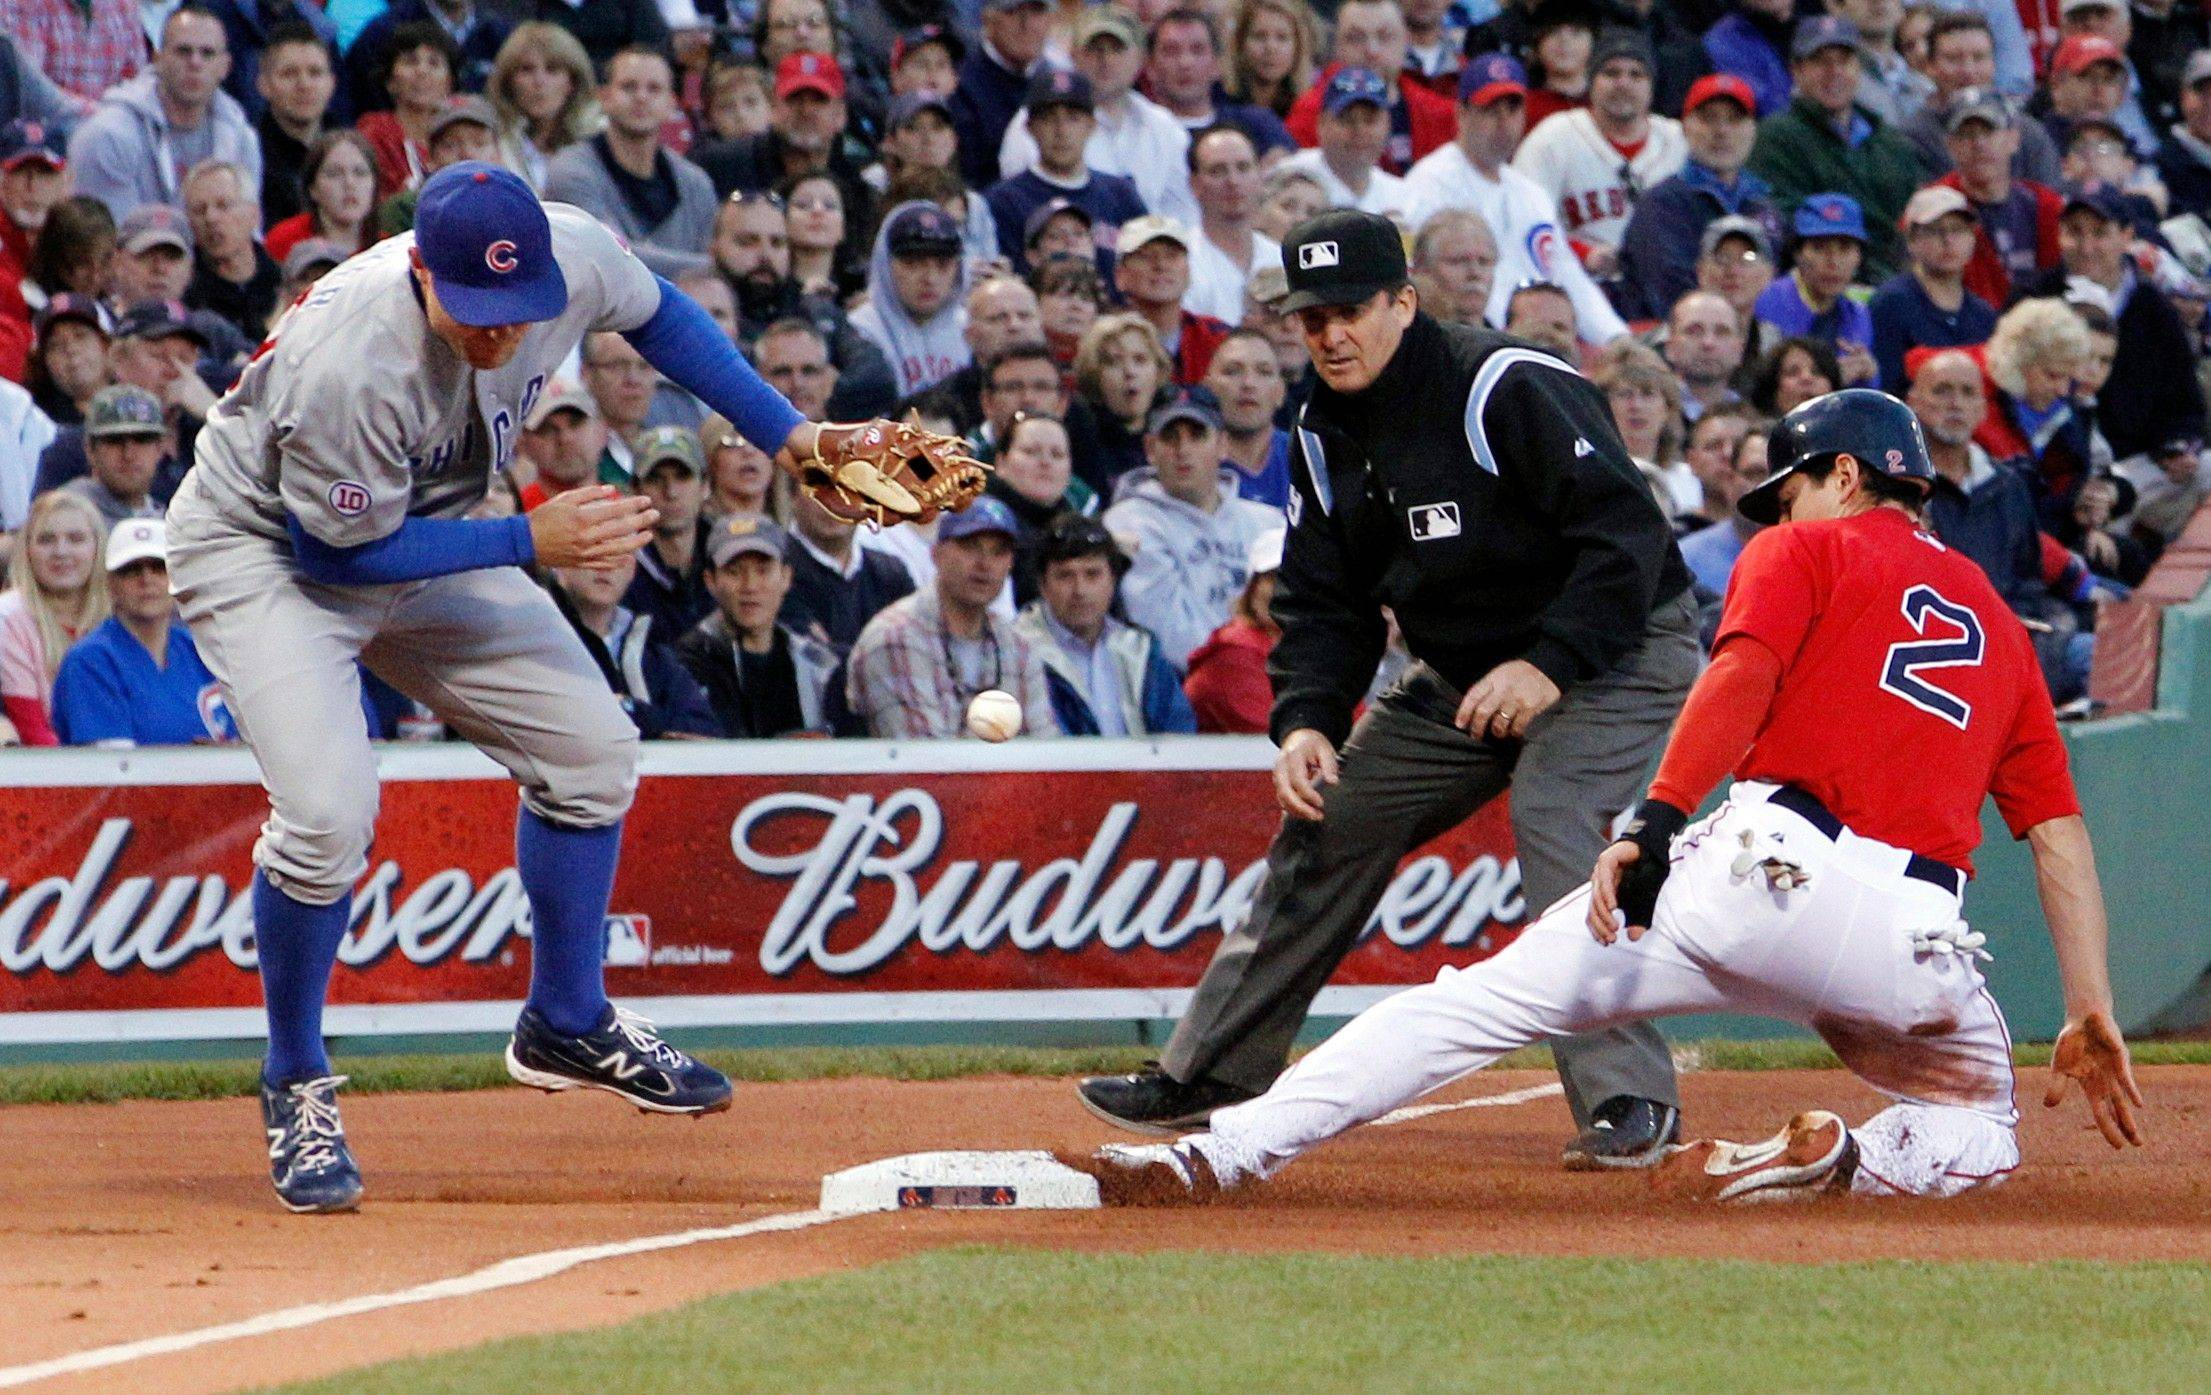 The ball gets away from Chicago Cubs third baseman Jeff Baker on a throwing error by catcher Koyie Hill as Boston Red Sox's Jacoby Ellsbury (2) steals third in the first inning of an interleague baseball game at Fenway Park in Boston Friday, May 20, 2011. Ellsbury ran home and scored on the error.